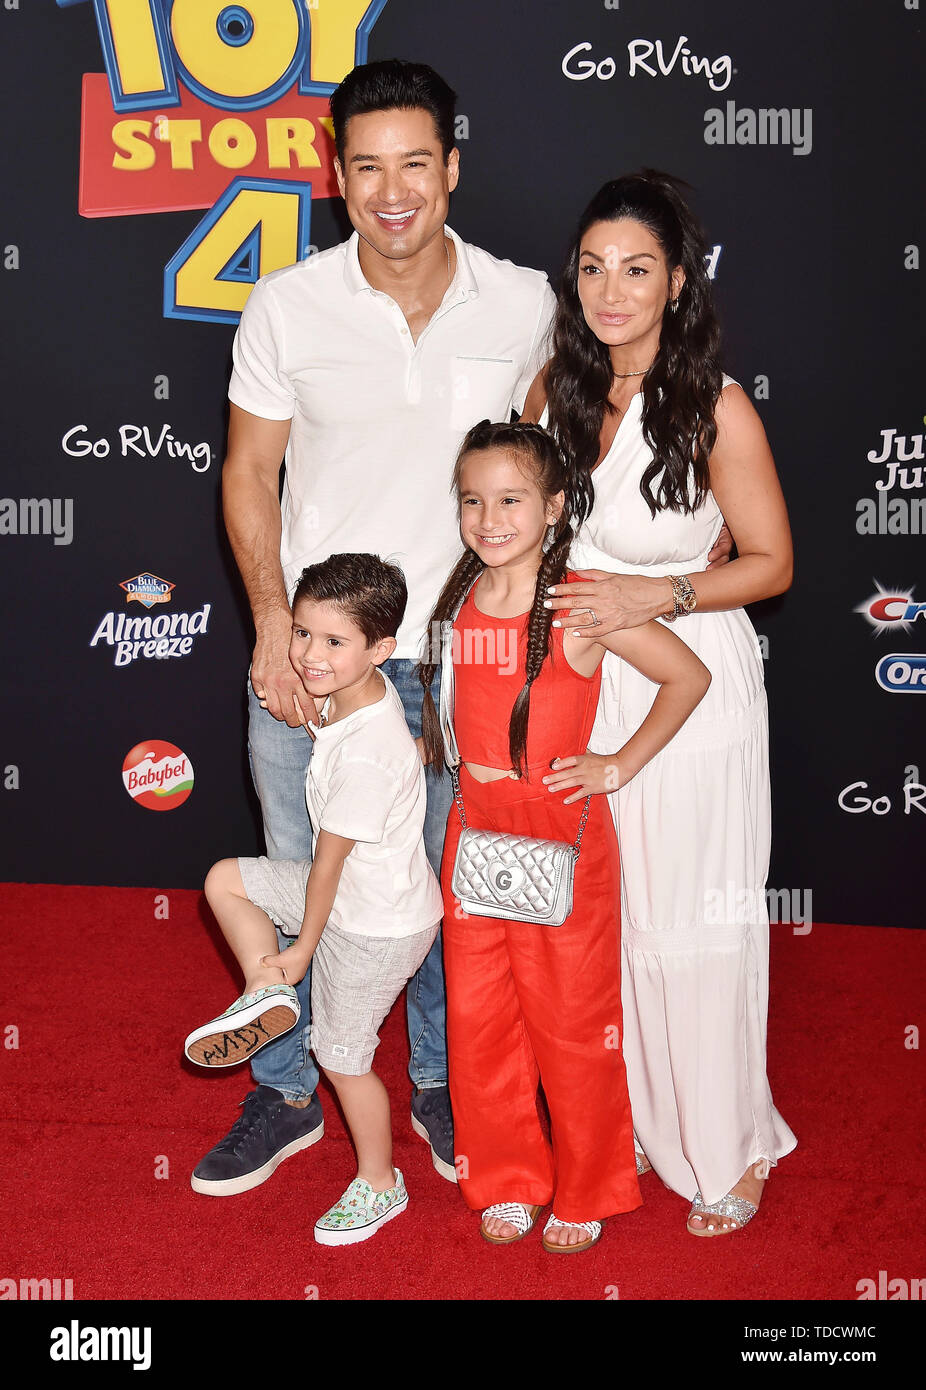 Mario Lopez Courtney High Resolution Stock Photography And Images